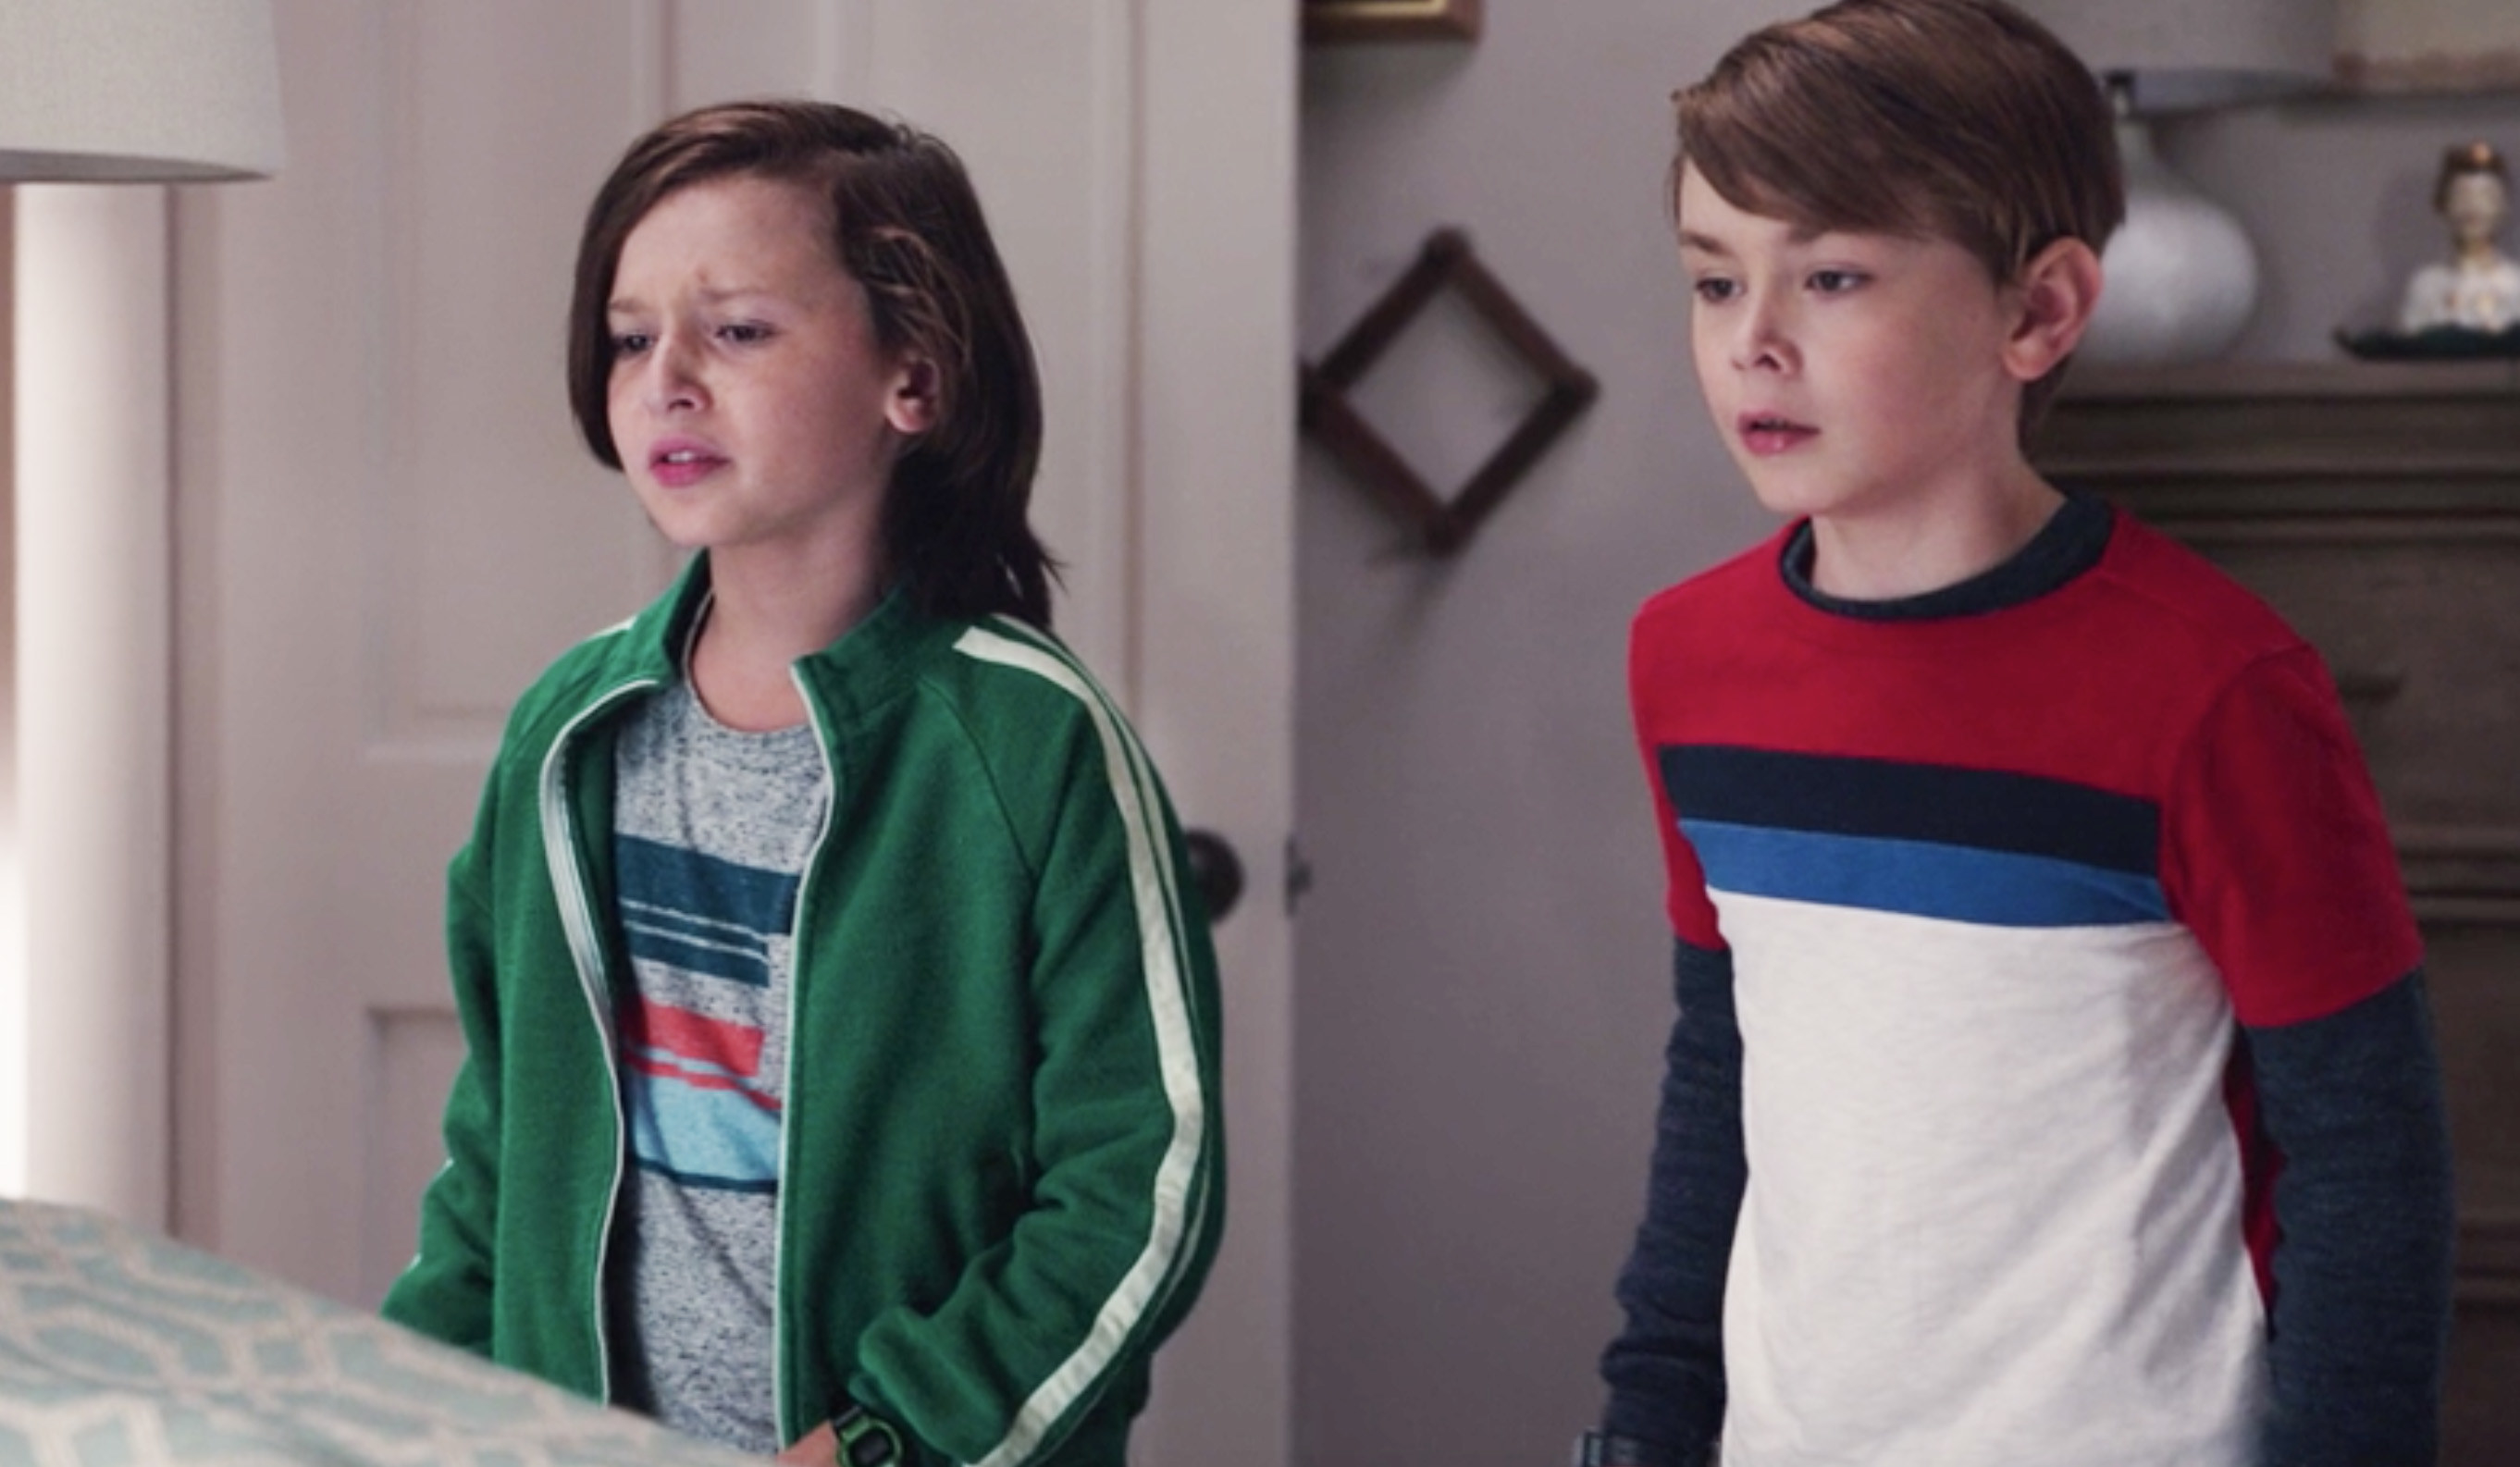 Tommy wearing a green jacket with a white stripe and Billy wearing a red, black, blue, and white striped shirt